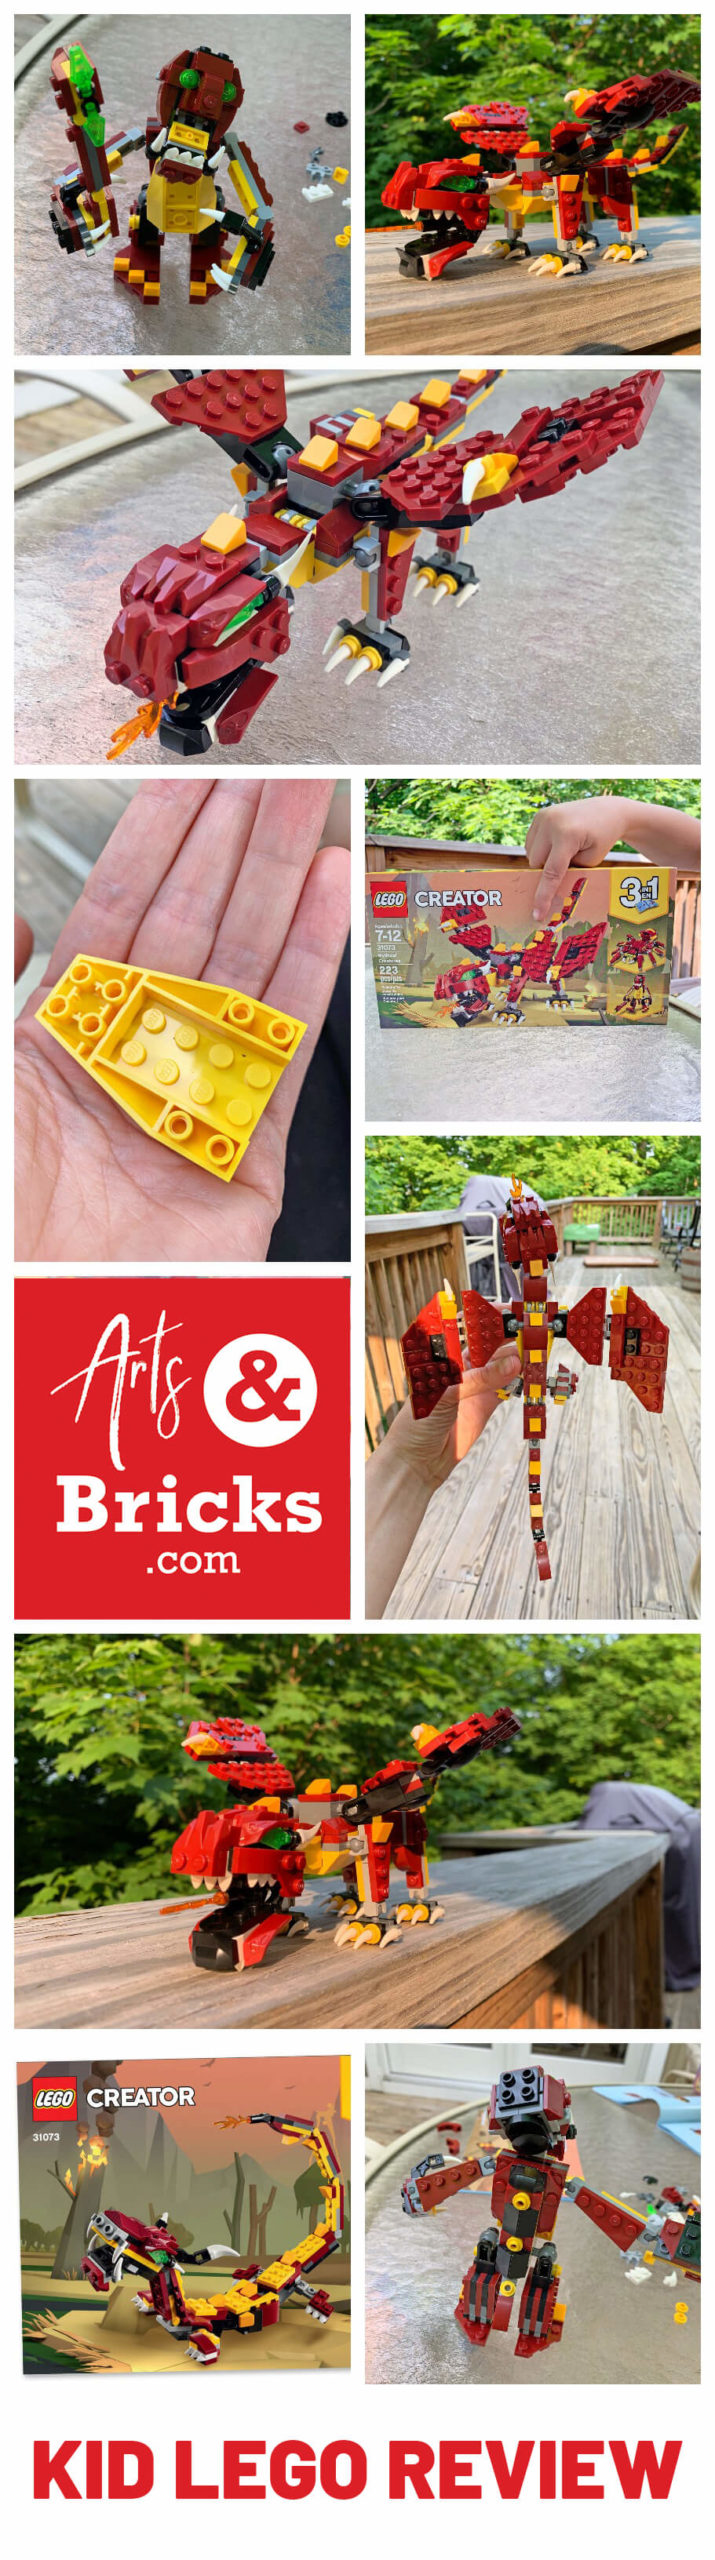 Dragons, Trolls and Spiders delight the LEGO-loving kiddo in your life with the LEGO Creator 3in1 Mythical Creatures 31073 Building set. Our kid-review shares the good and the bad of this set and pictures! Take a look!  #legostagram #toptoyphotos #toysphotogram #legolife #instalego #brickinsider #legomania #legophoto #legocollection #forkids #legoaddict #legobuilder #legobricks #afol #legos #brickstagram #legofun #creativekids #legofan #legoart #instalego #bykidsforkids #legoworld #artsandbricks #lego  #legophotos #legocreations #lego #kids #legobuilder #legophotography #parenting #legos #littlecreatives